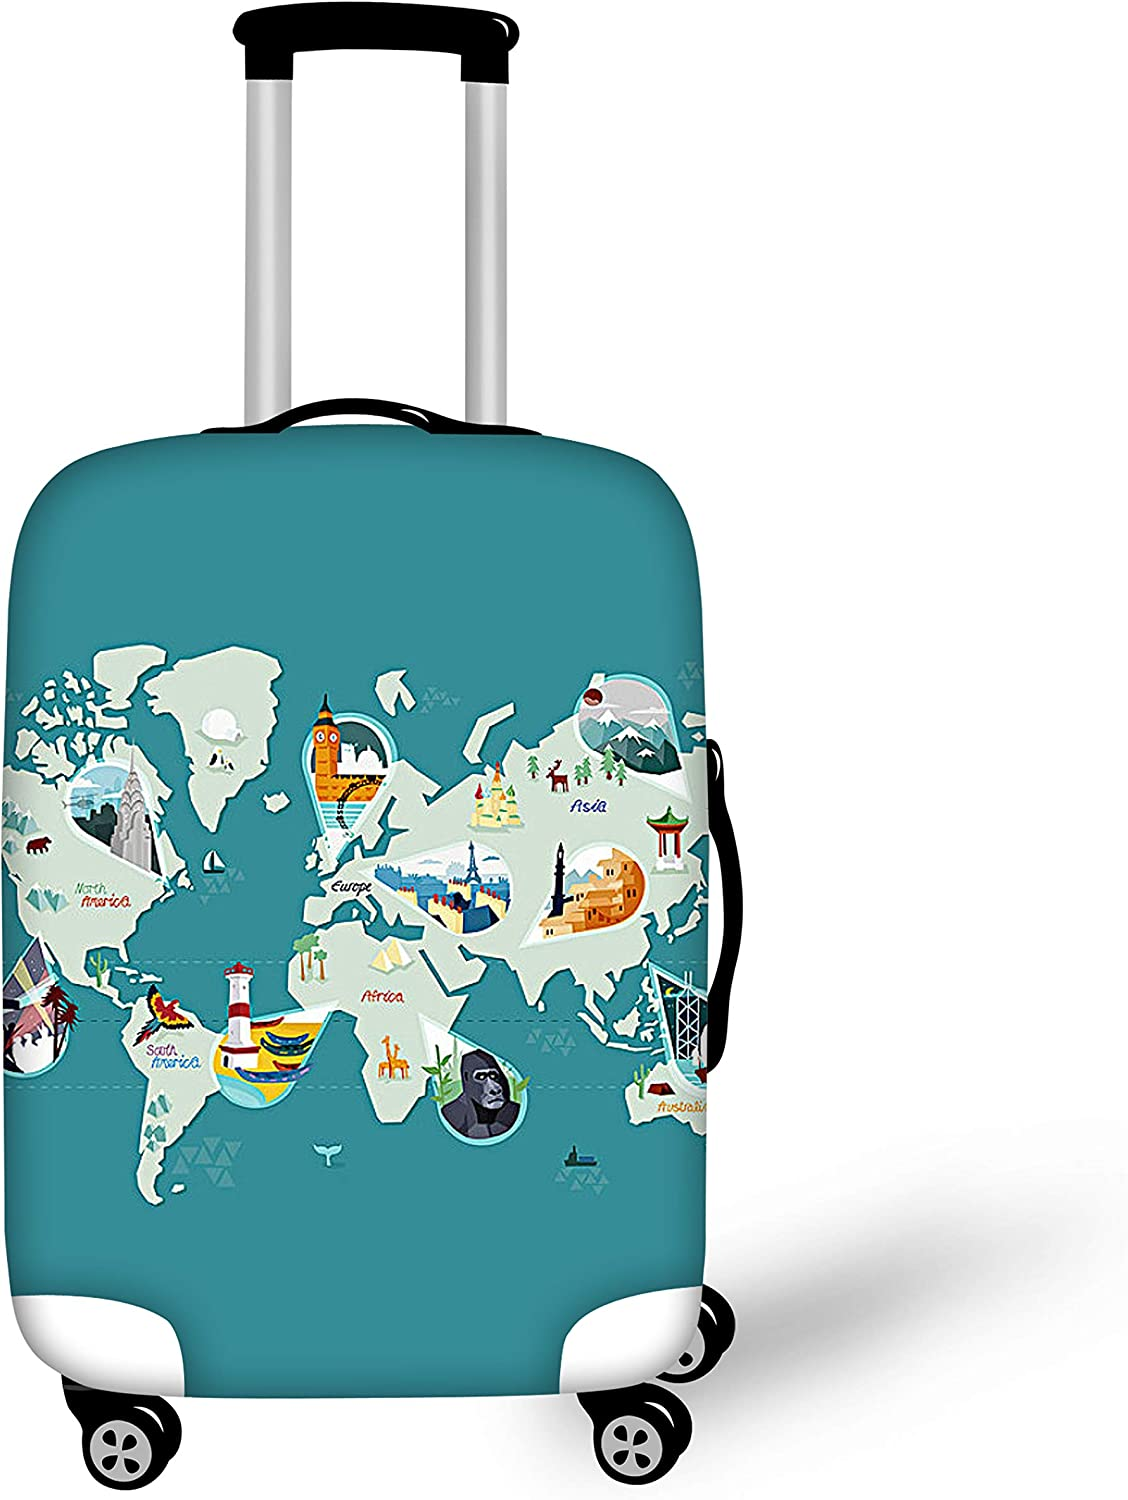 BIGCARJOB Travel Luggage Cover Protective Suitcase Covers Dust-Proof Washable Case Cat Printed Fit 26-28inch